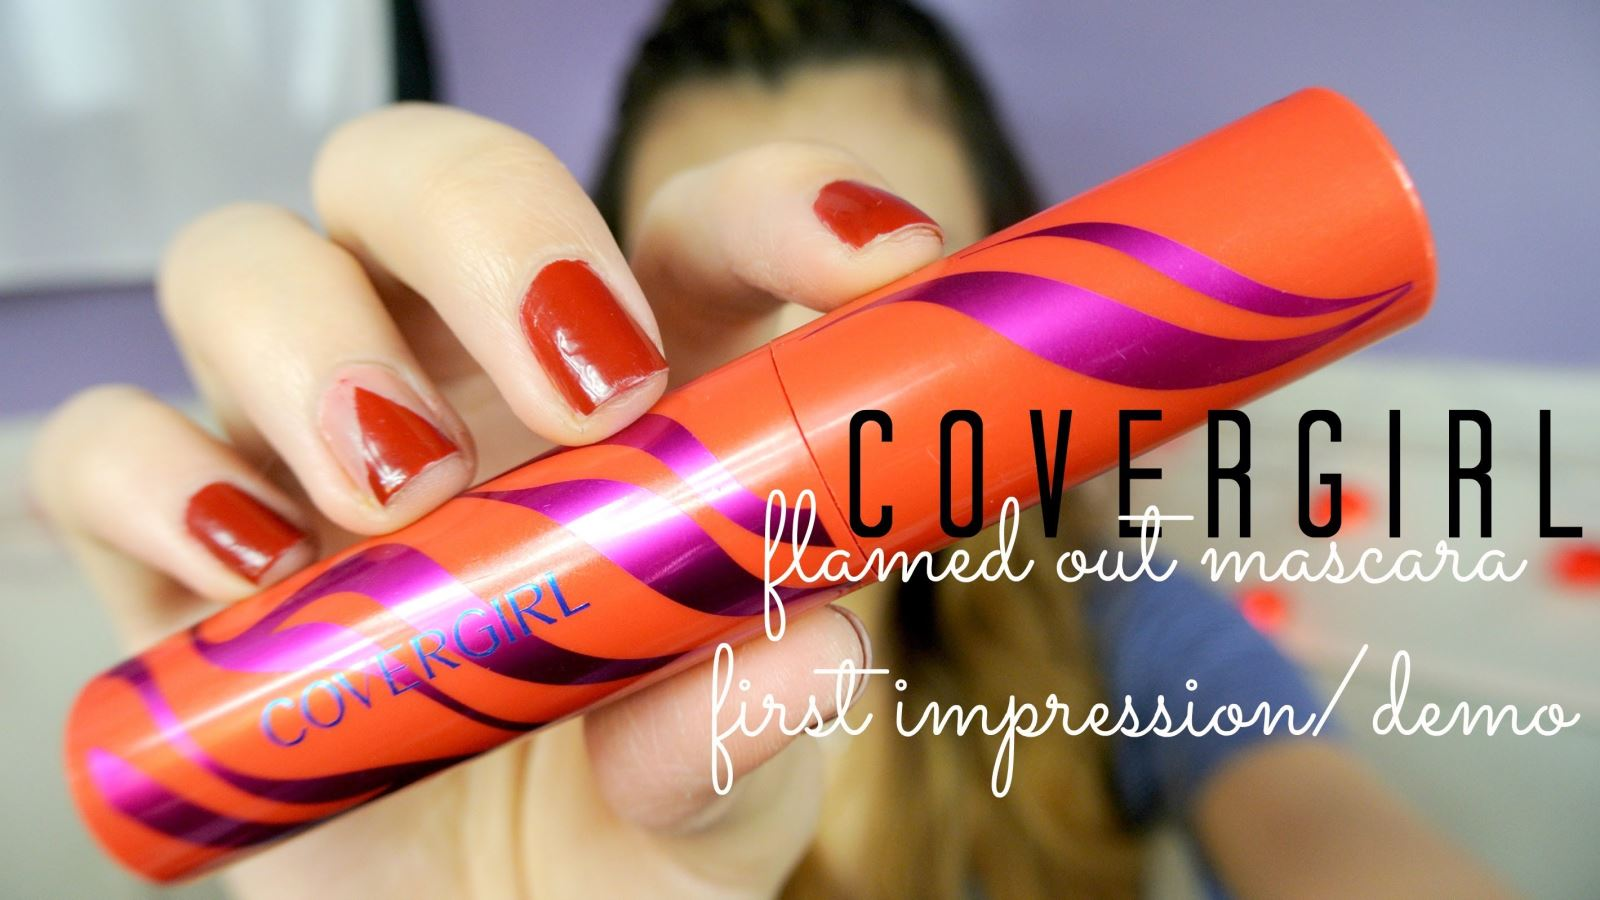 Mascara CoverGirl Flamed Out Water Resistant